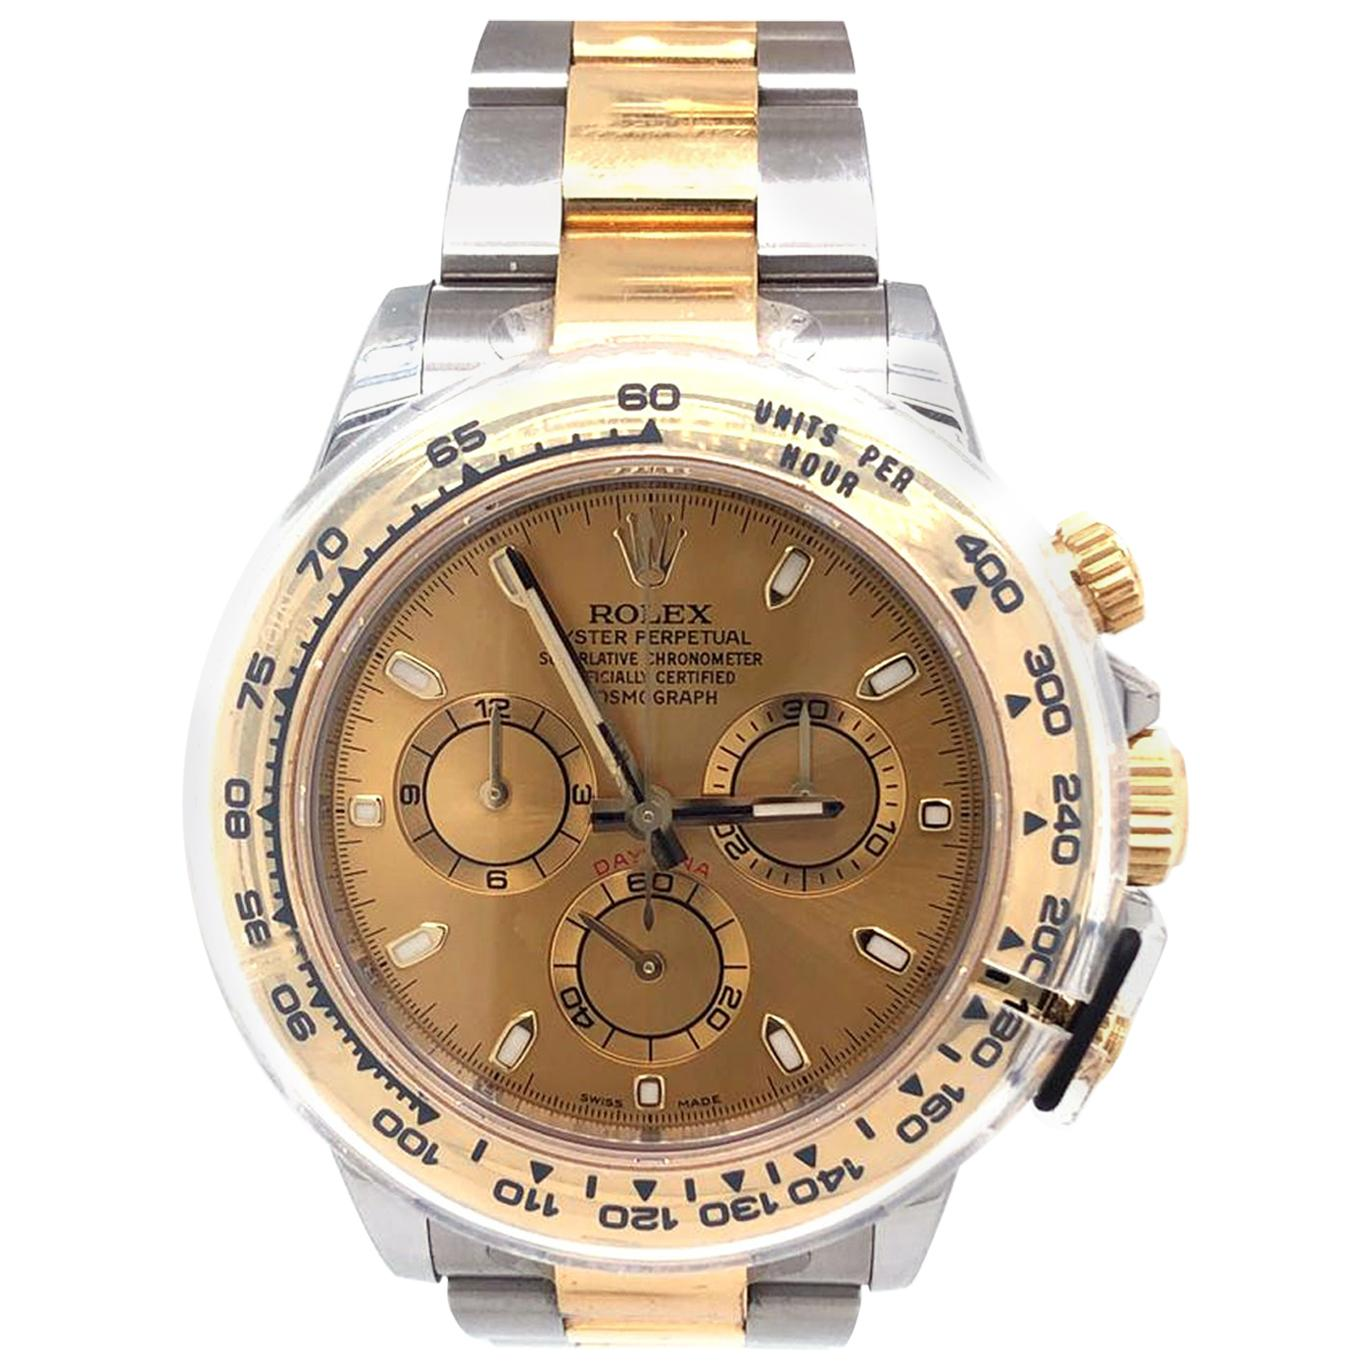 Rolex Cosmograph Daytona Yellow Gold Automatic Champagne Dial Men's Watch 116503